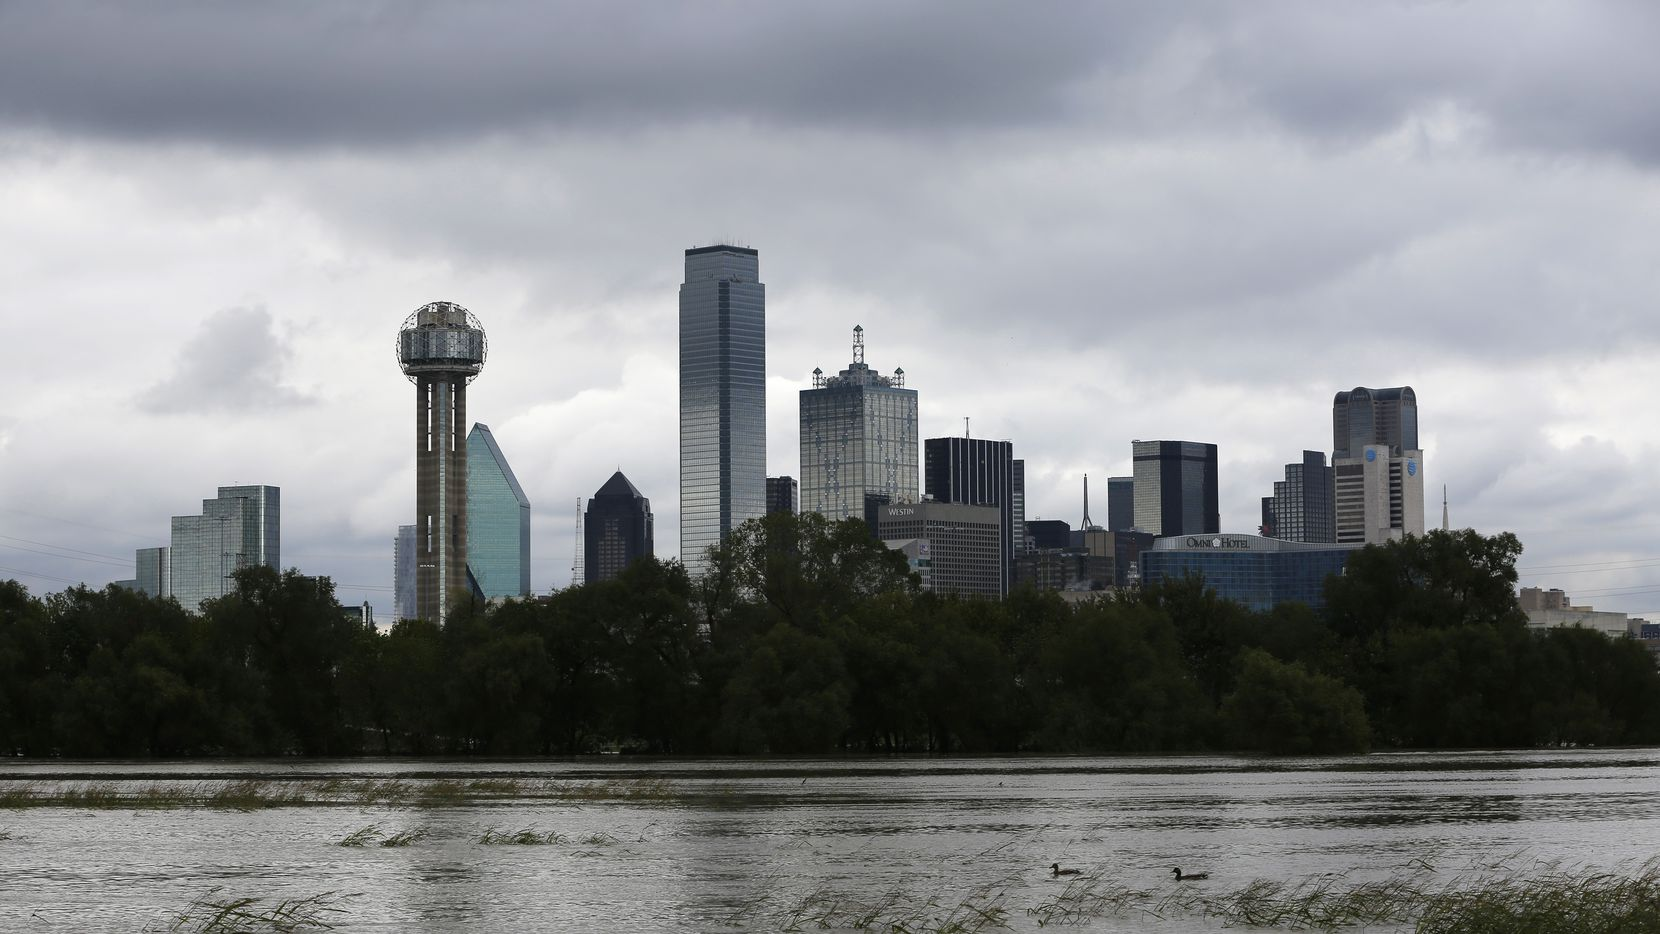 Record rains swelled the Trinity River in Dallas in October.